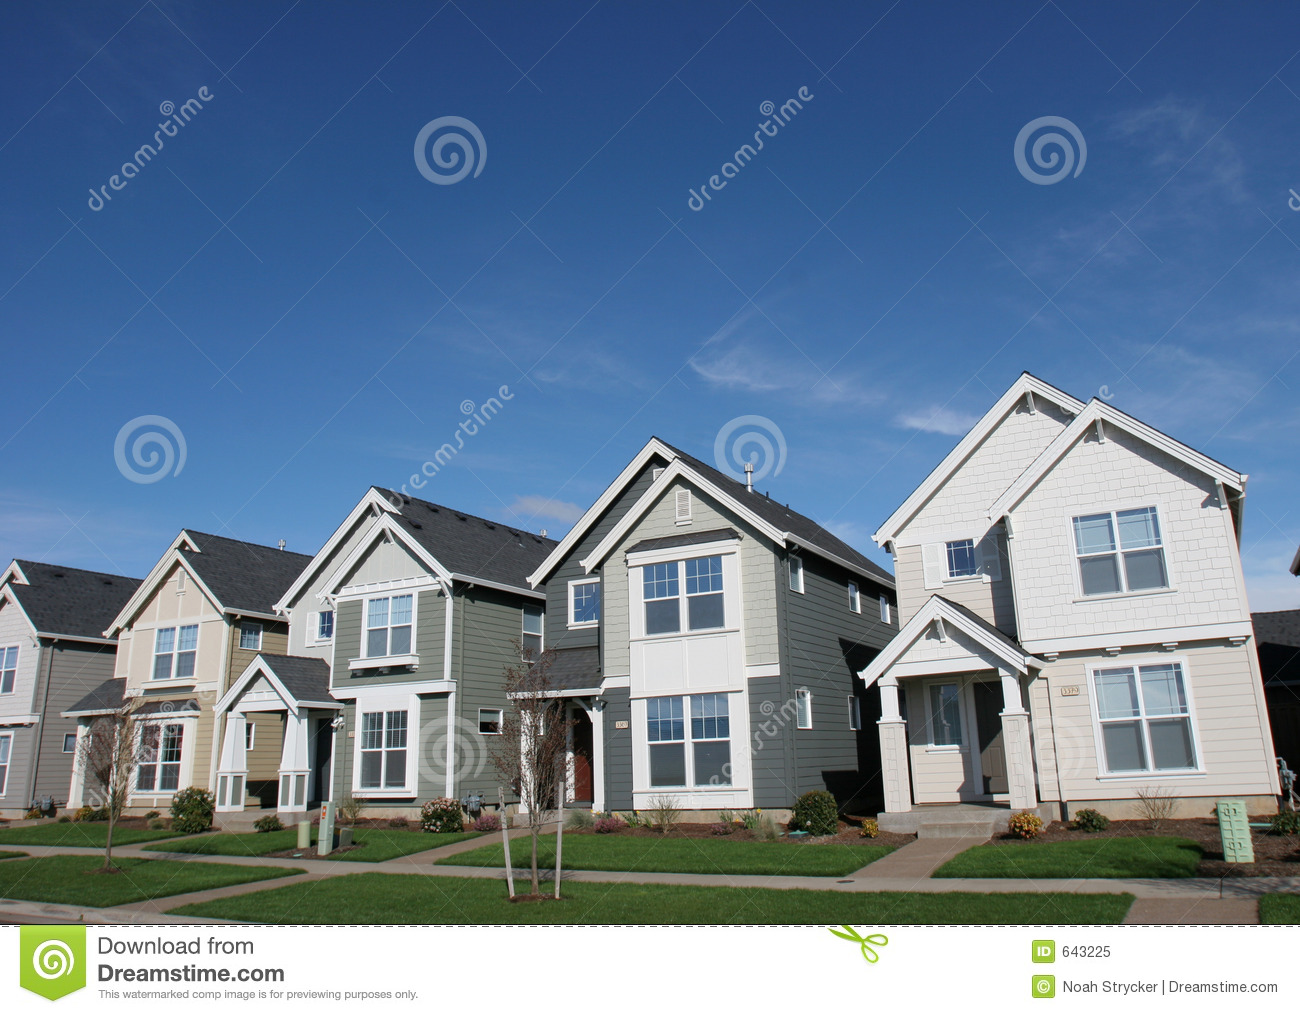 Suburban houses stock image image of house blue housing 643225 Hause on line